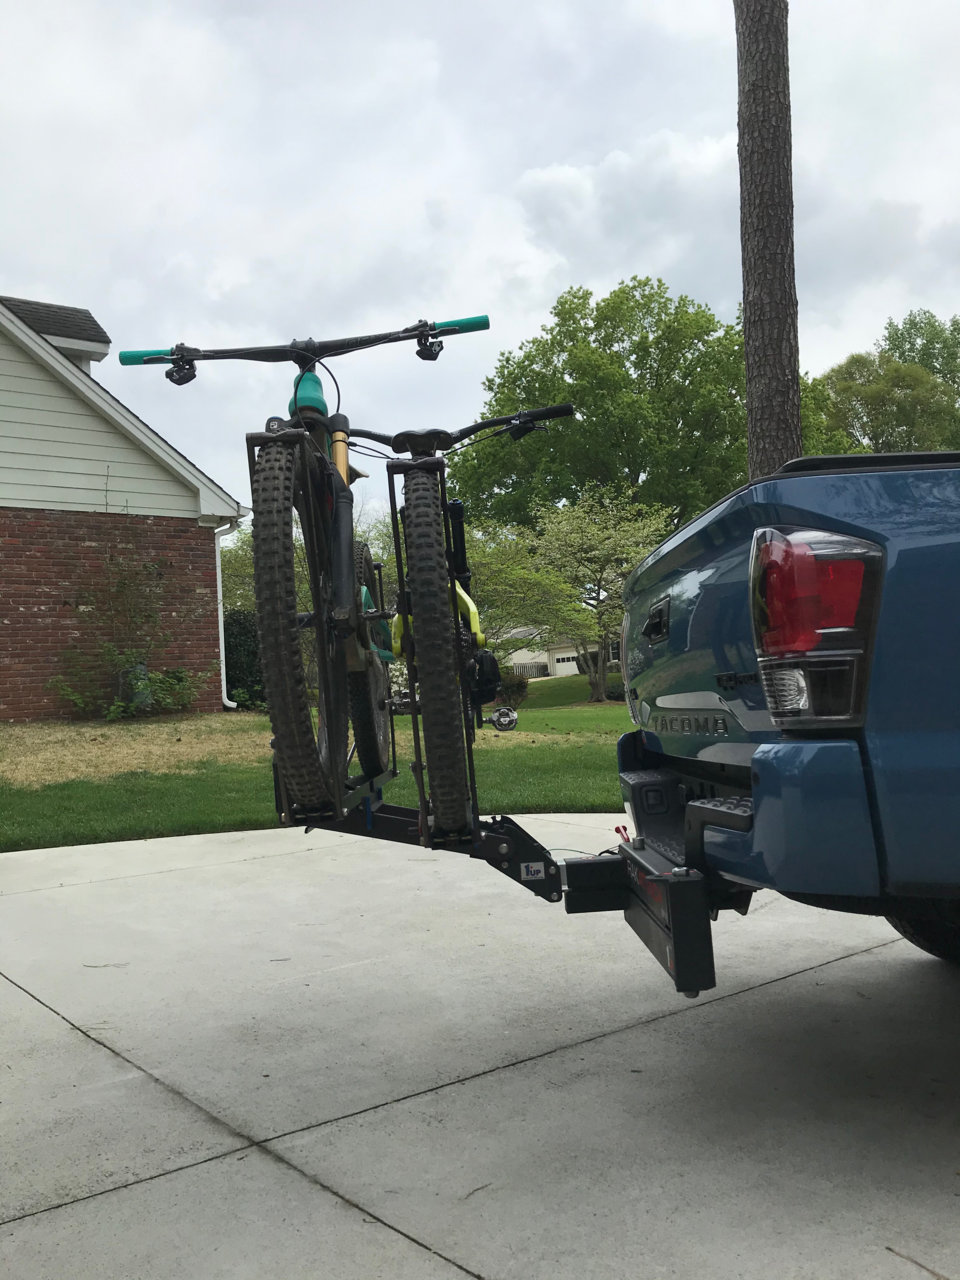 How To Tie Down A Kayak In A Truck Bed : kayak, truck, Hauling, Kayak, Short, Suggestions, Tacoma, World